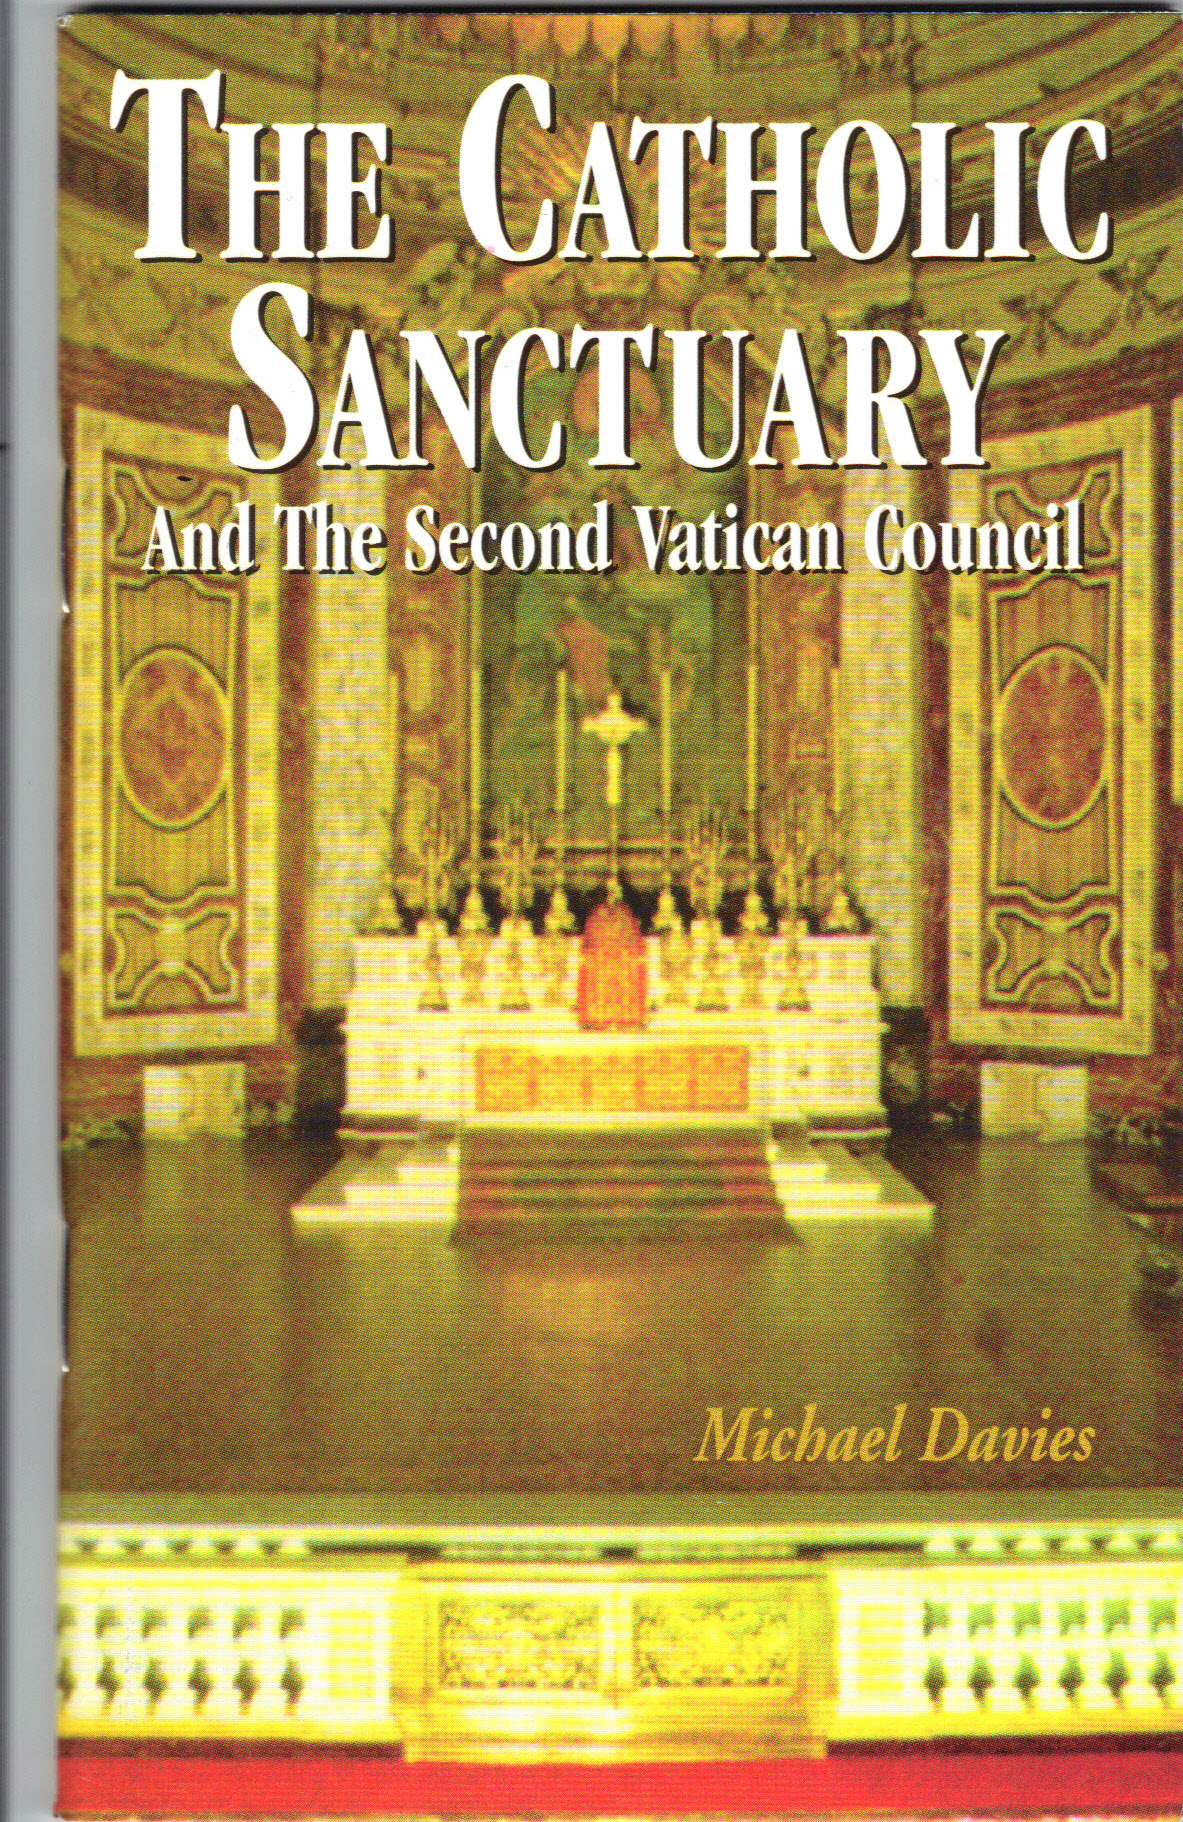 Image for The Catholic Sanctuary-And The Second Vatican Council